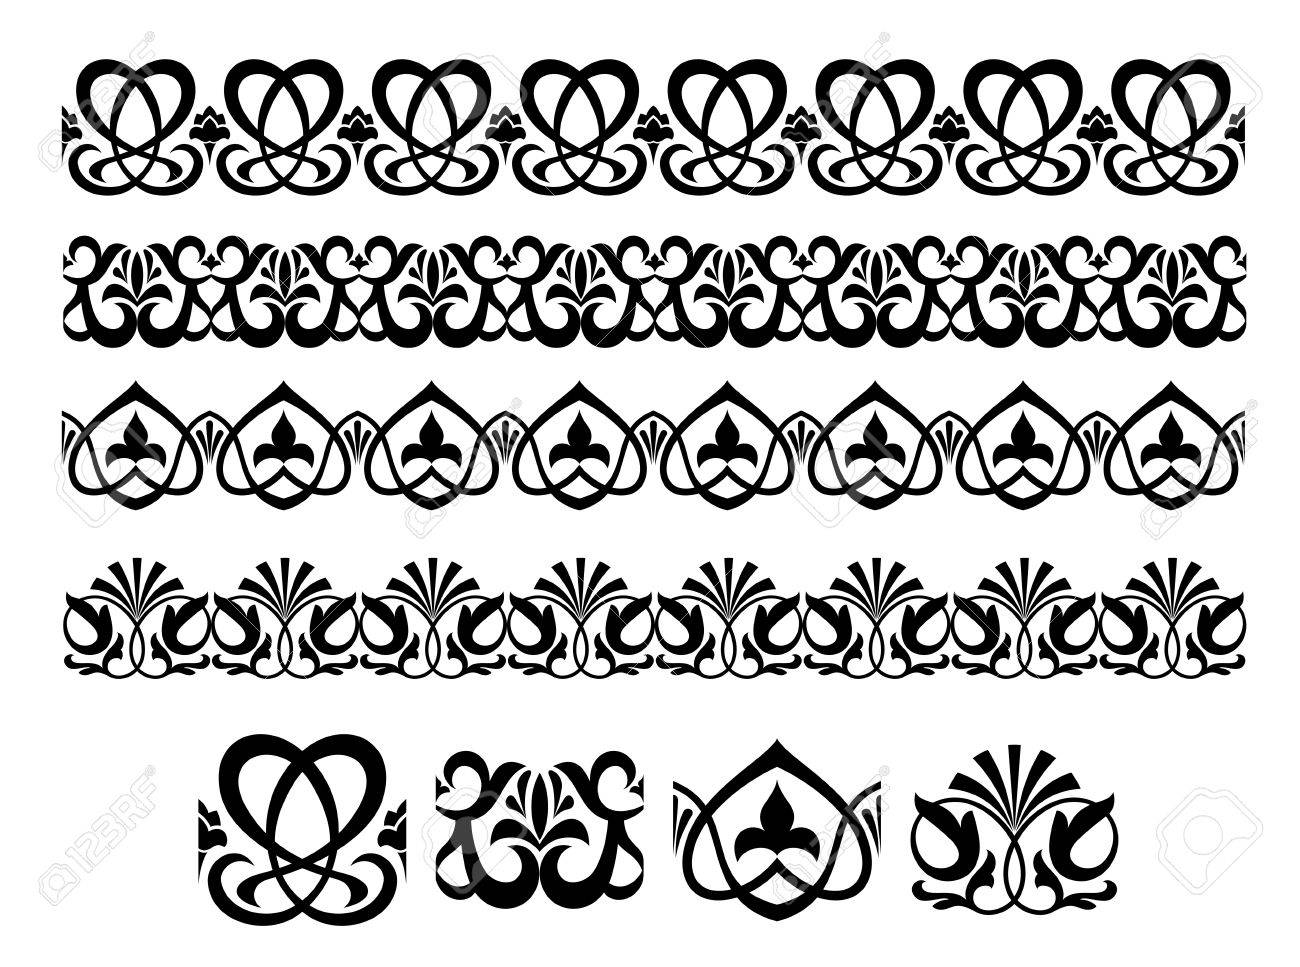 Retro ornaments and embellishments for ornate and decoration Stock Vector - 13828647